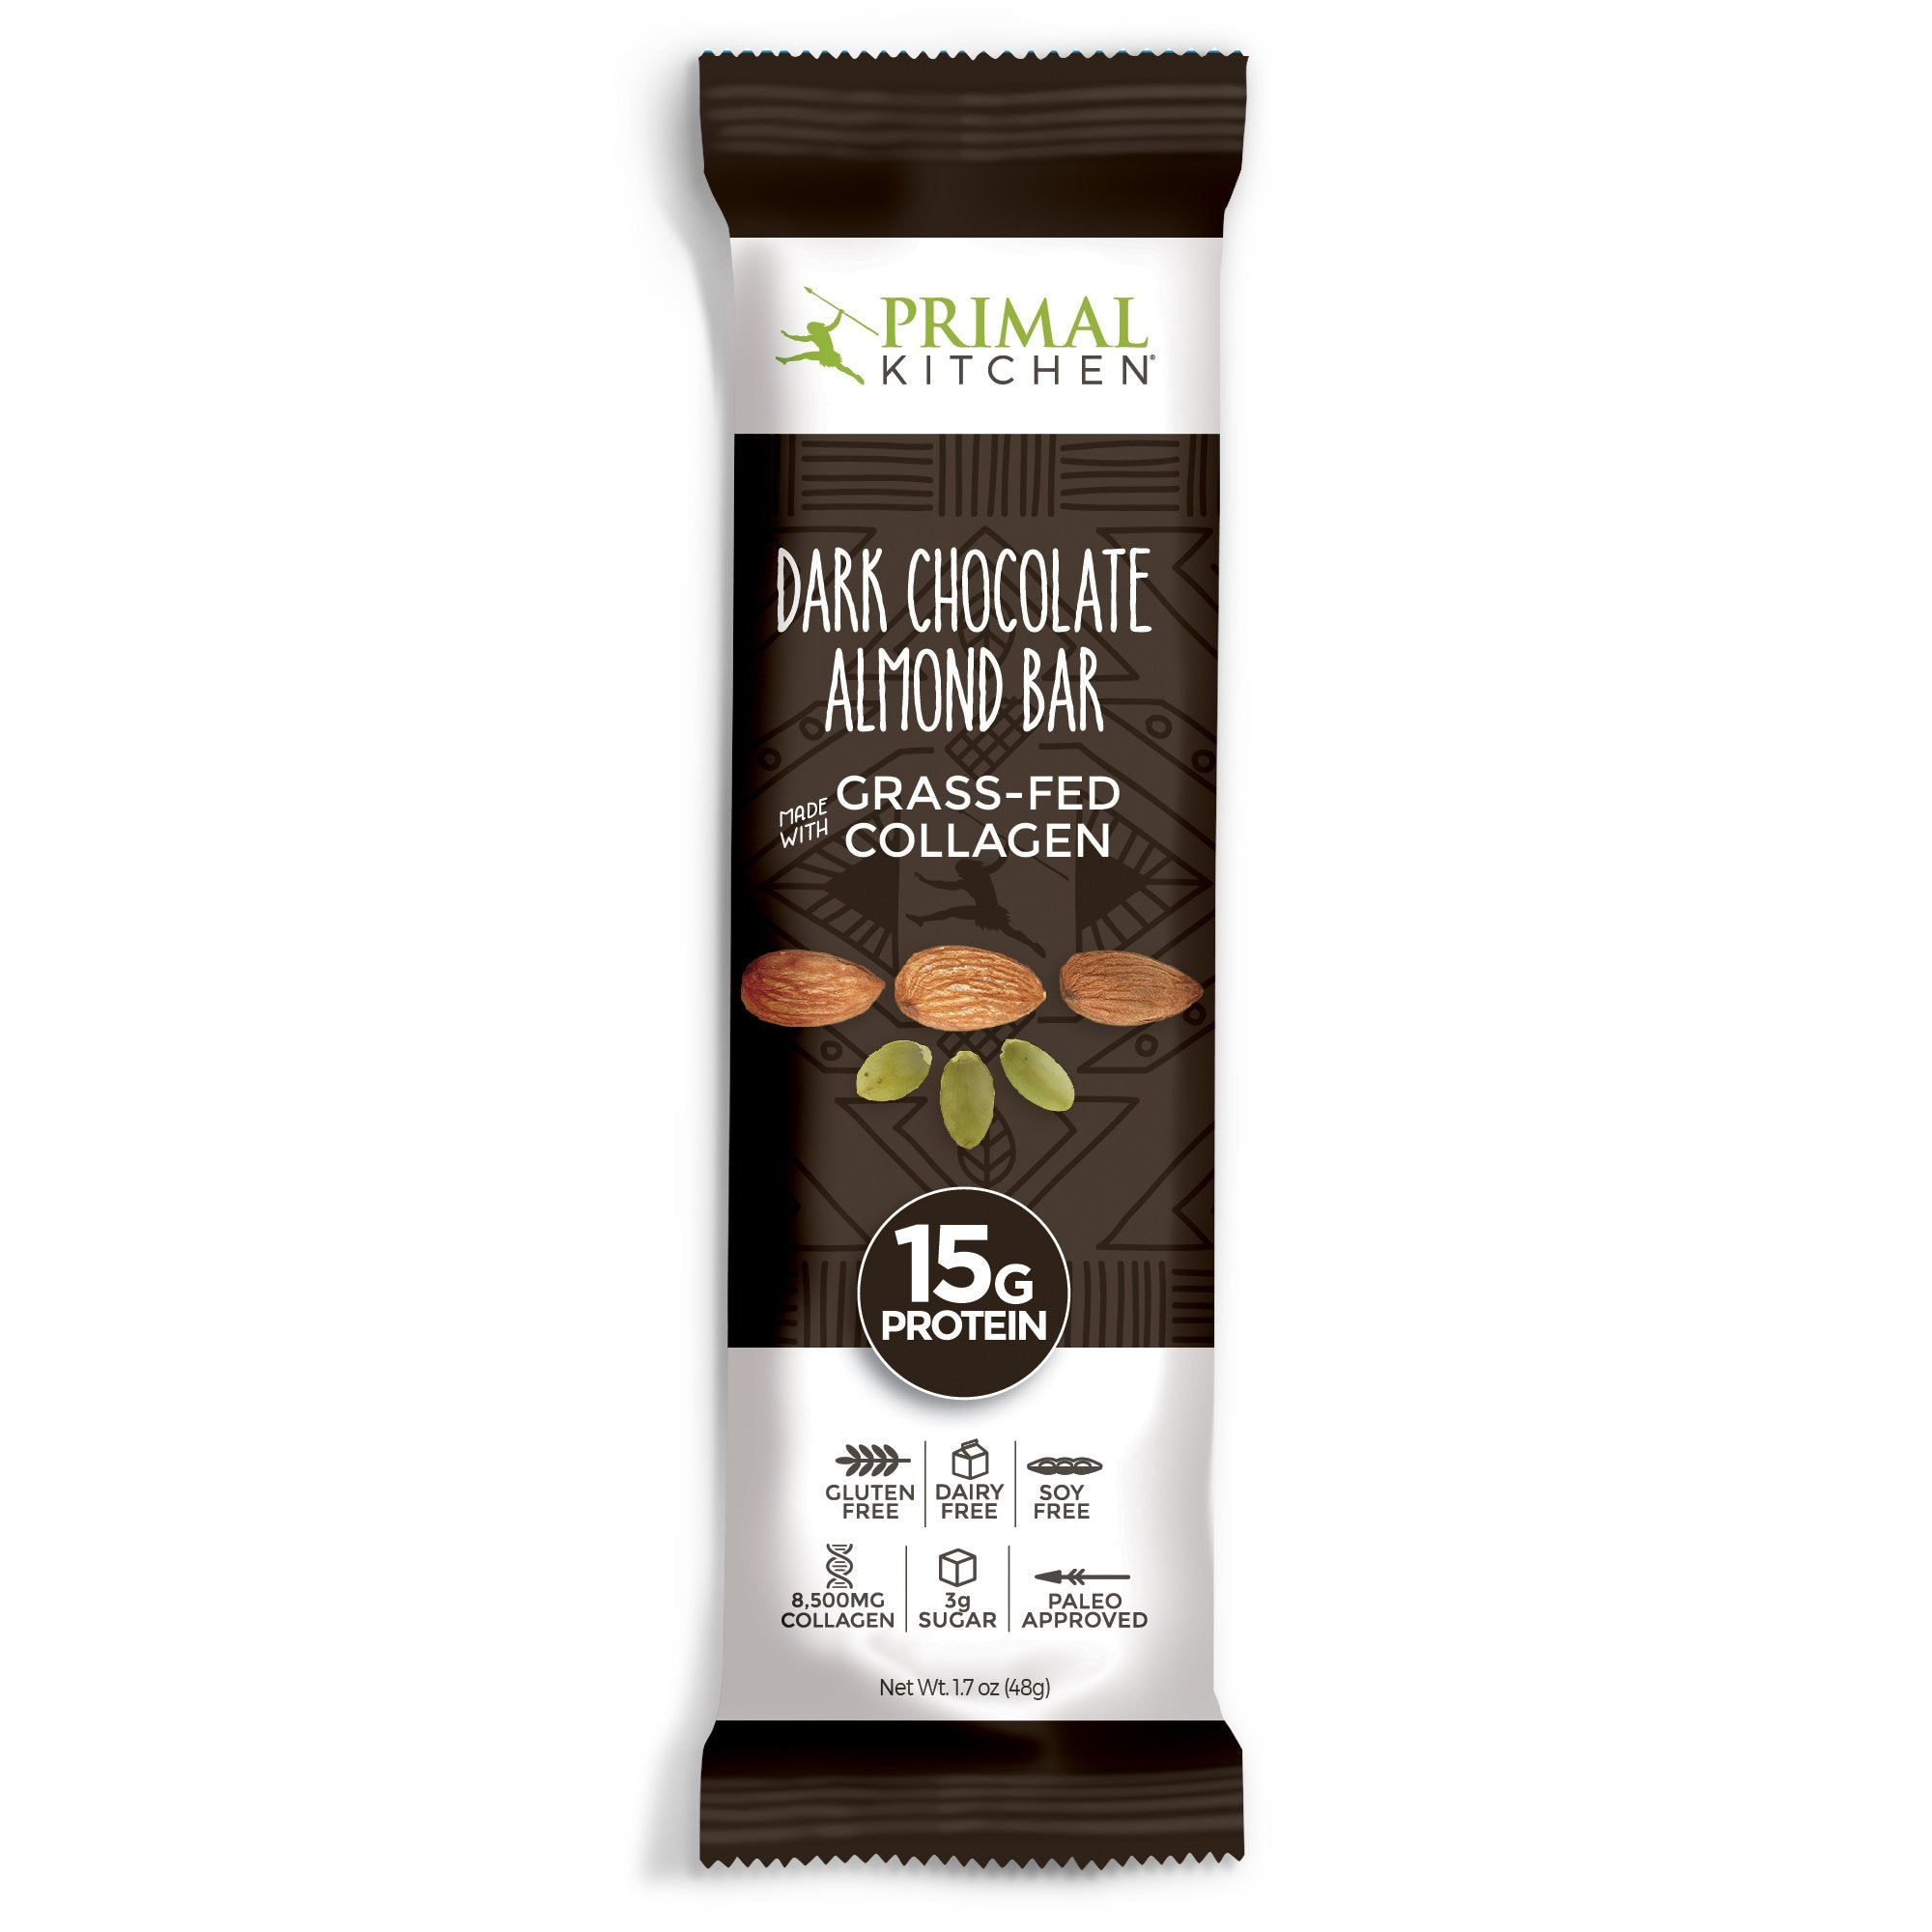 Get Primal Kitchen Dark Chocolate Almond Bars